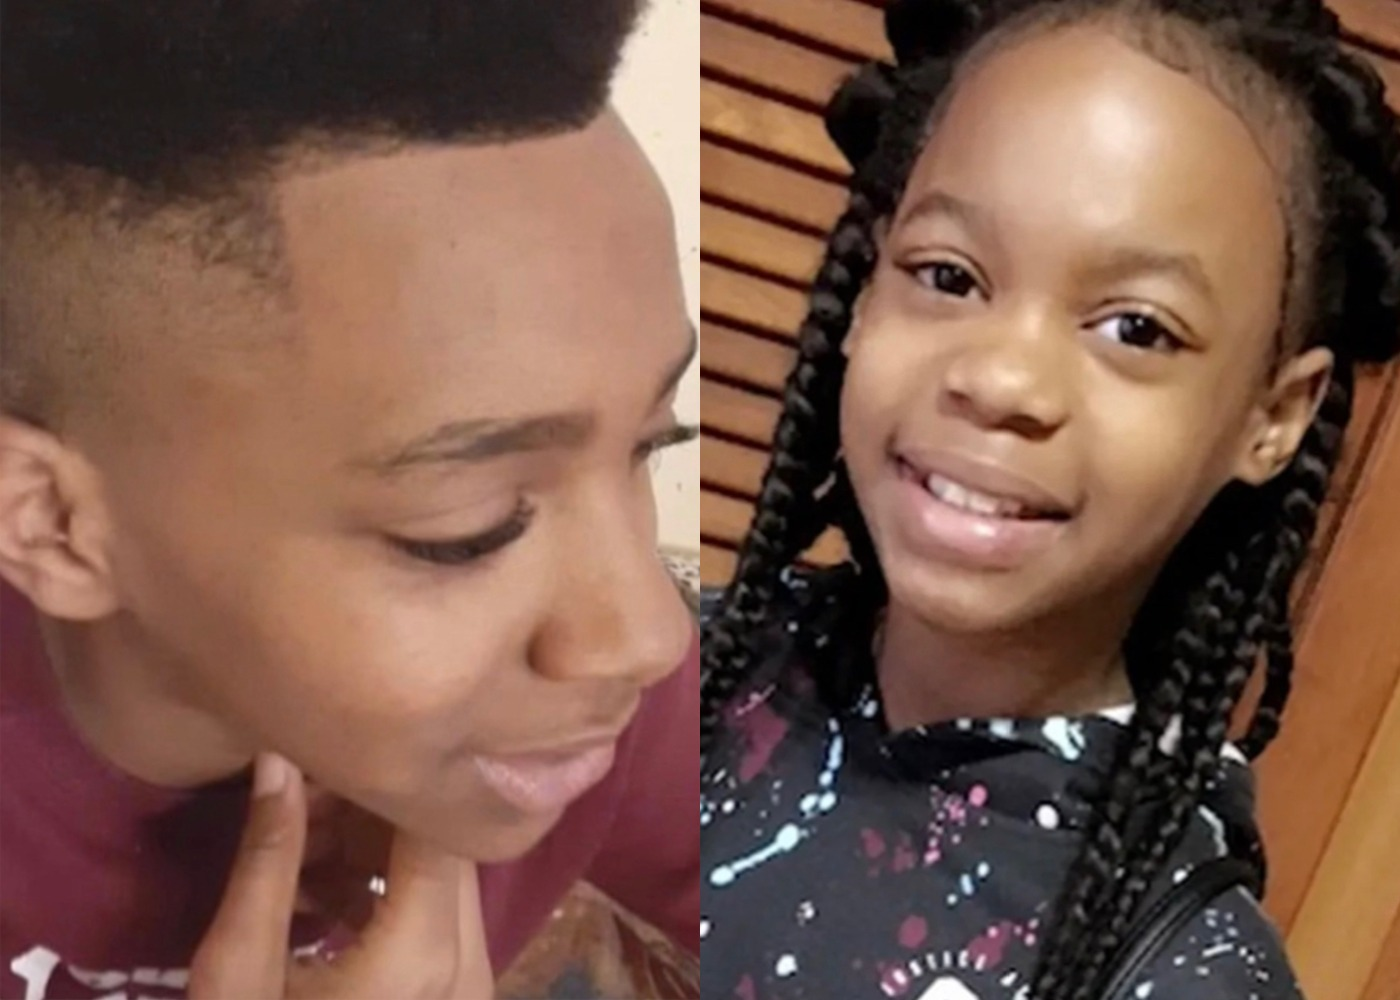 Swaysee Rankin (left) was critically wounded in a shooting Monday, six months after he helped save the life of his close friend La'Mya Sparks (right) in another shooting.